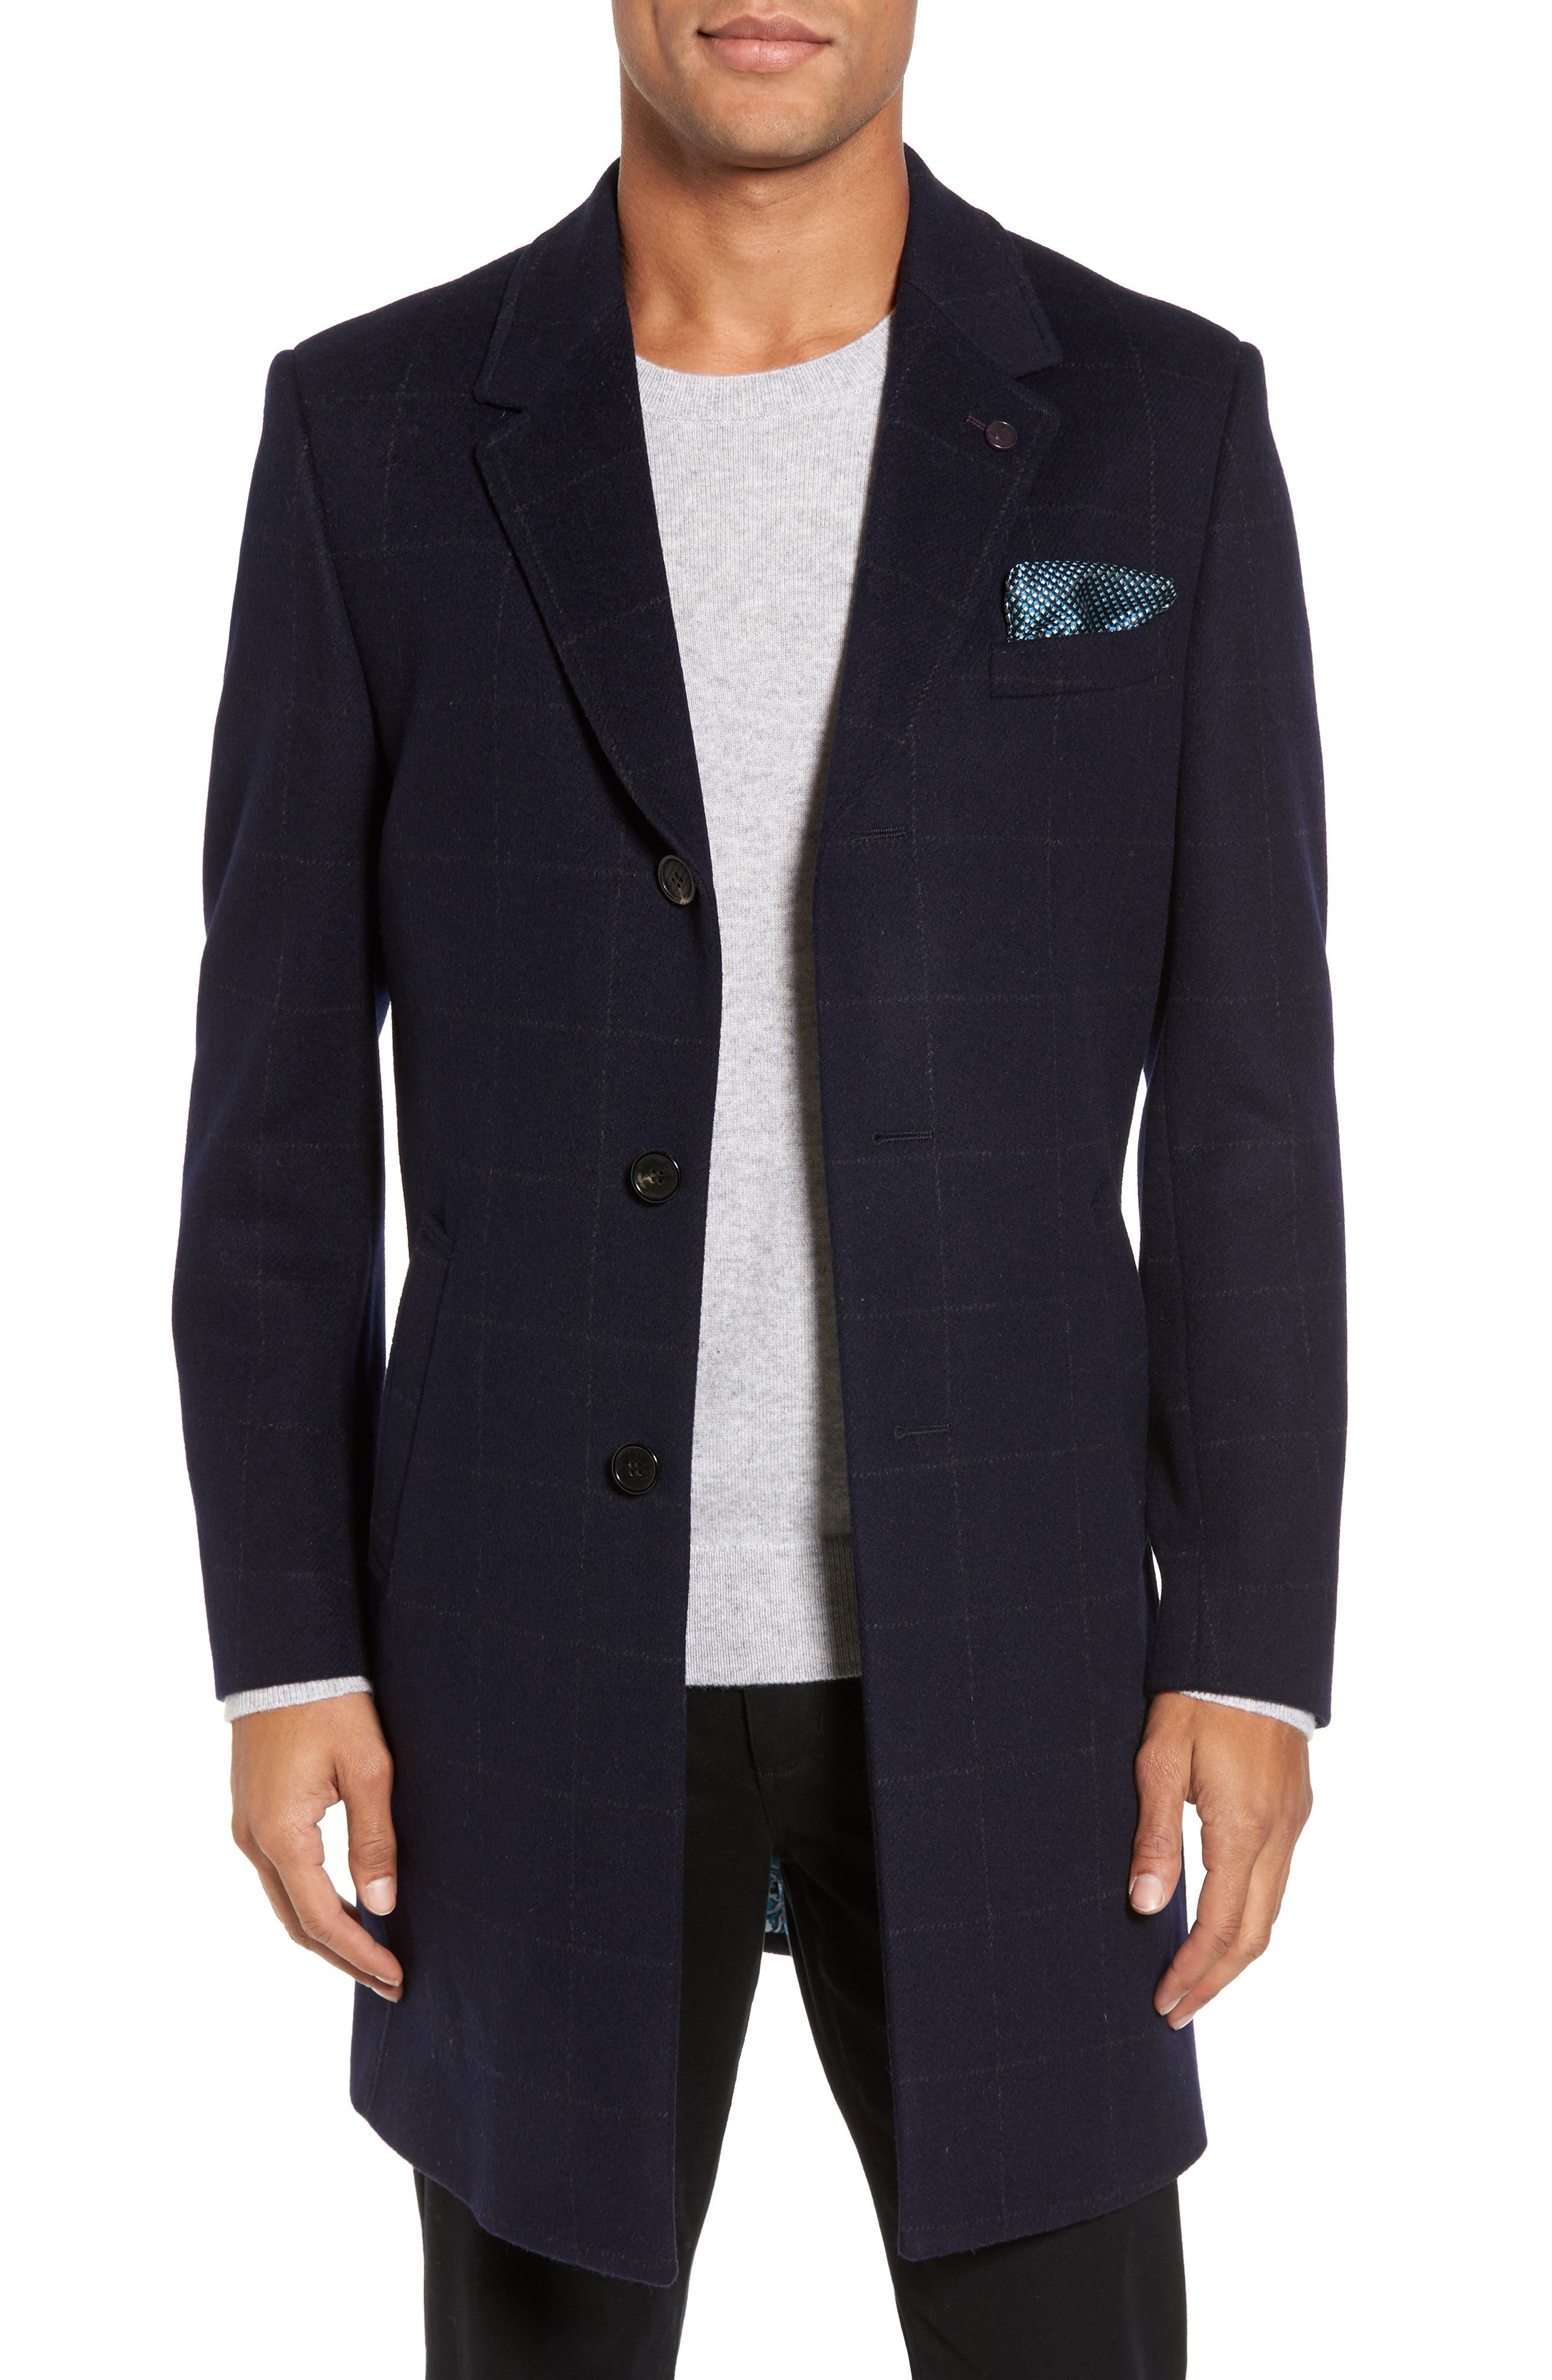 Endurance Wool Blend Overcoat,                             Main thumbnail 1, color,                             Navy